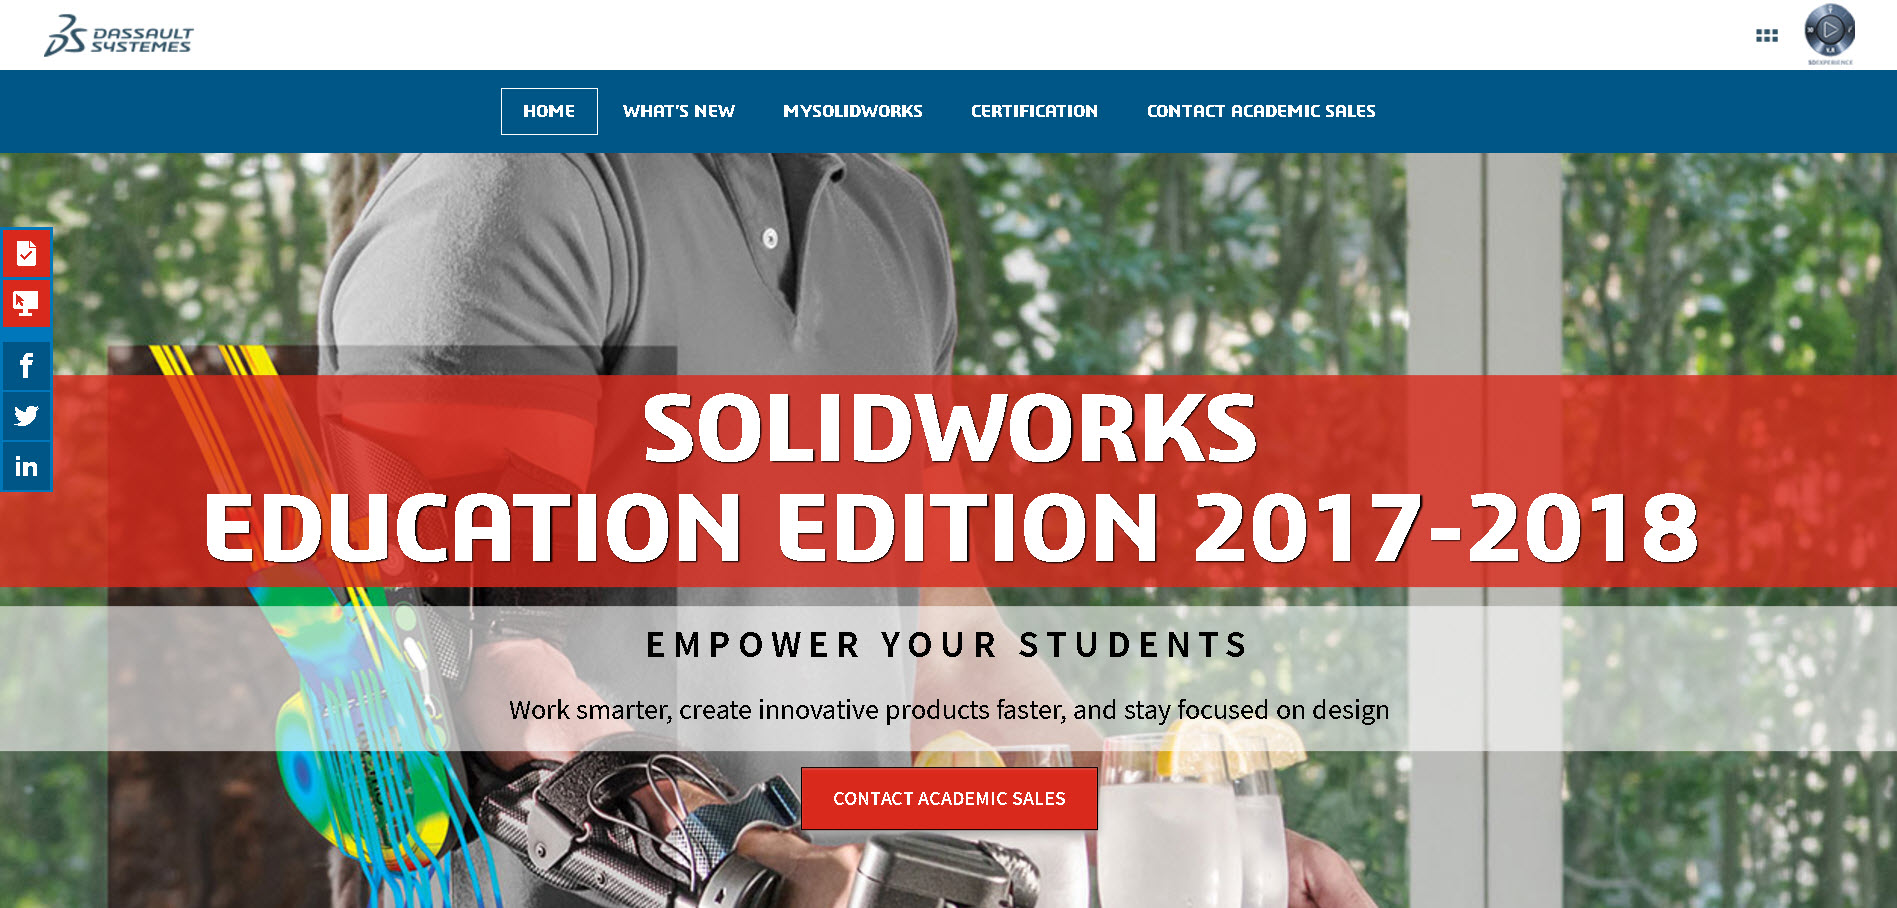 SOLIDWORKS Education Edition 2017-2018